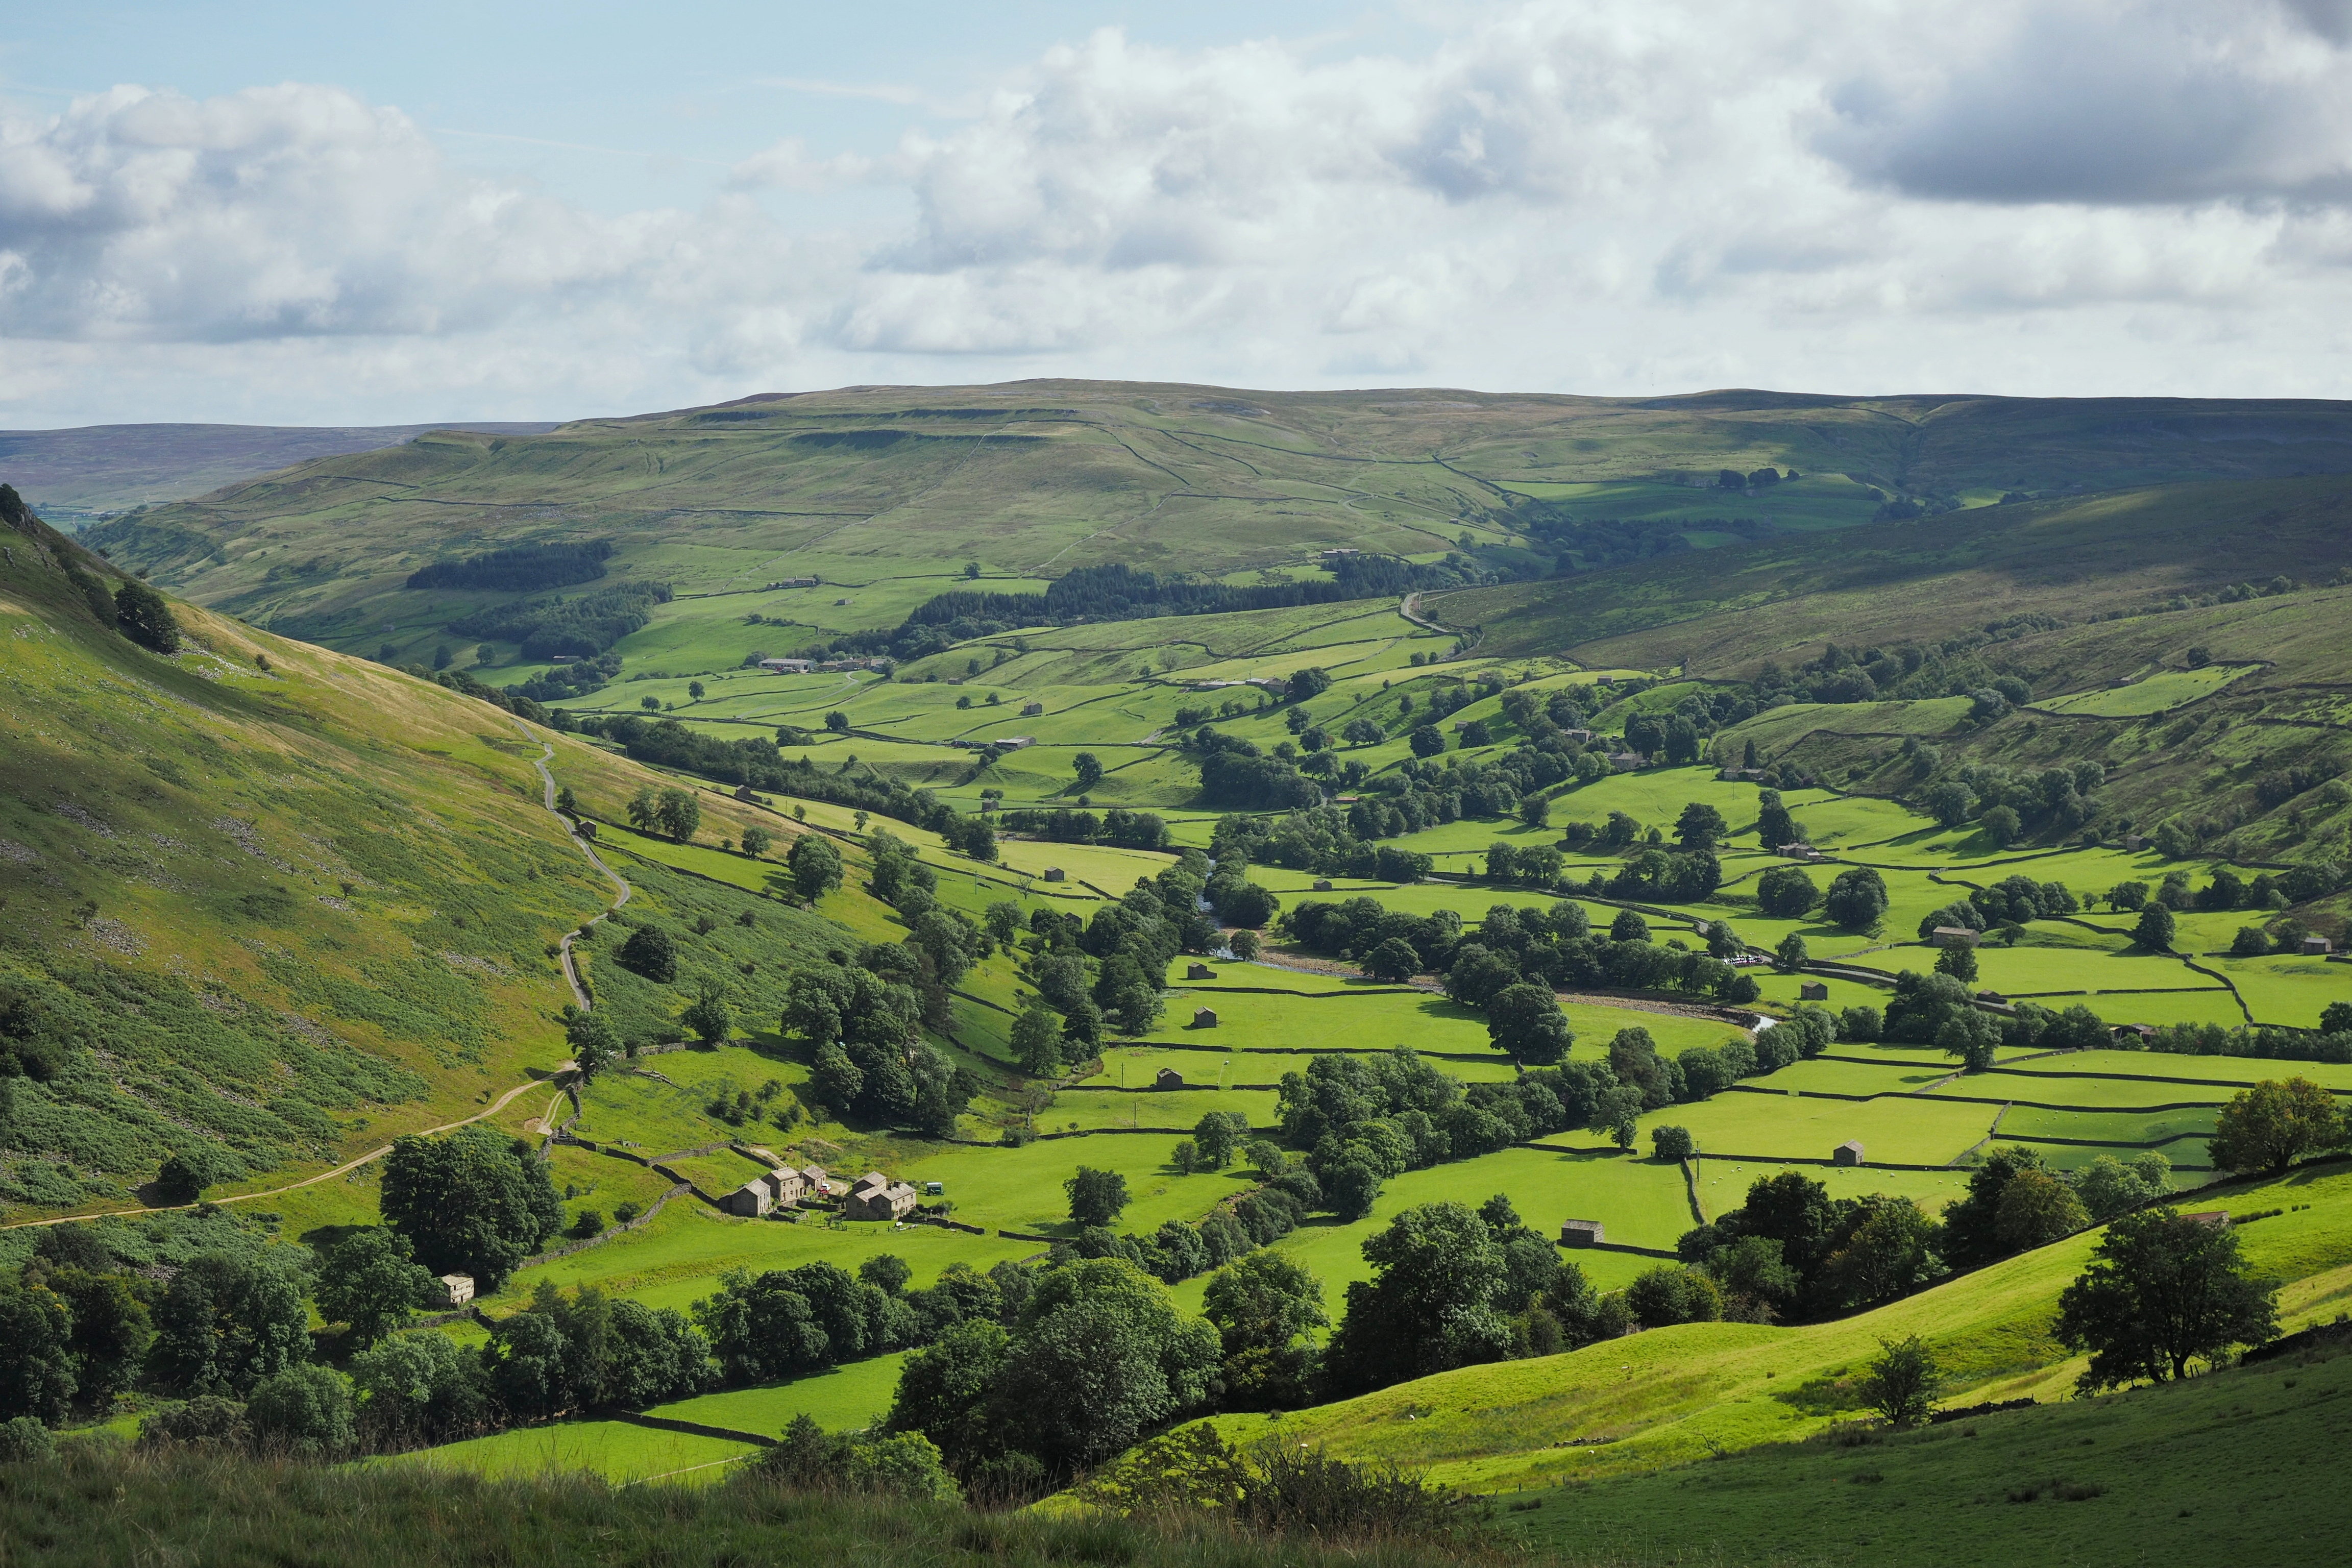 Luxury%20romantic%20cottages%20in%20the%20Yorkshire%20Dales%202.jpg